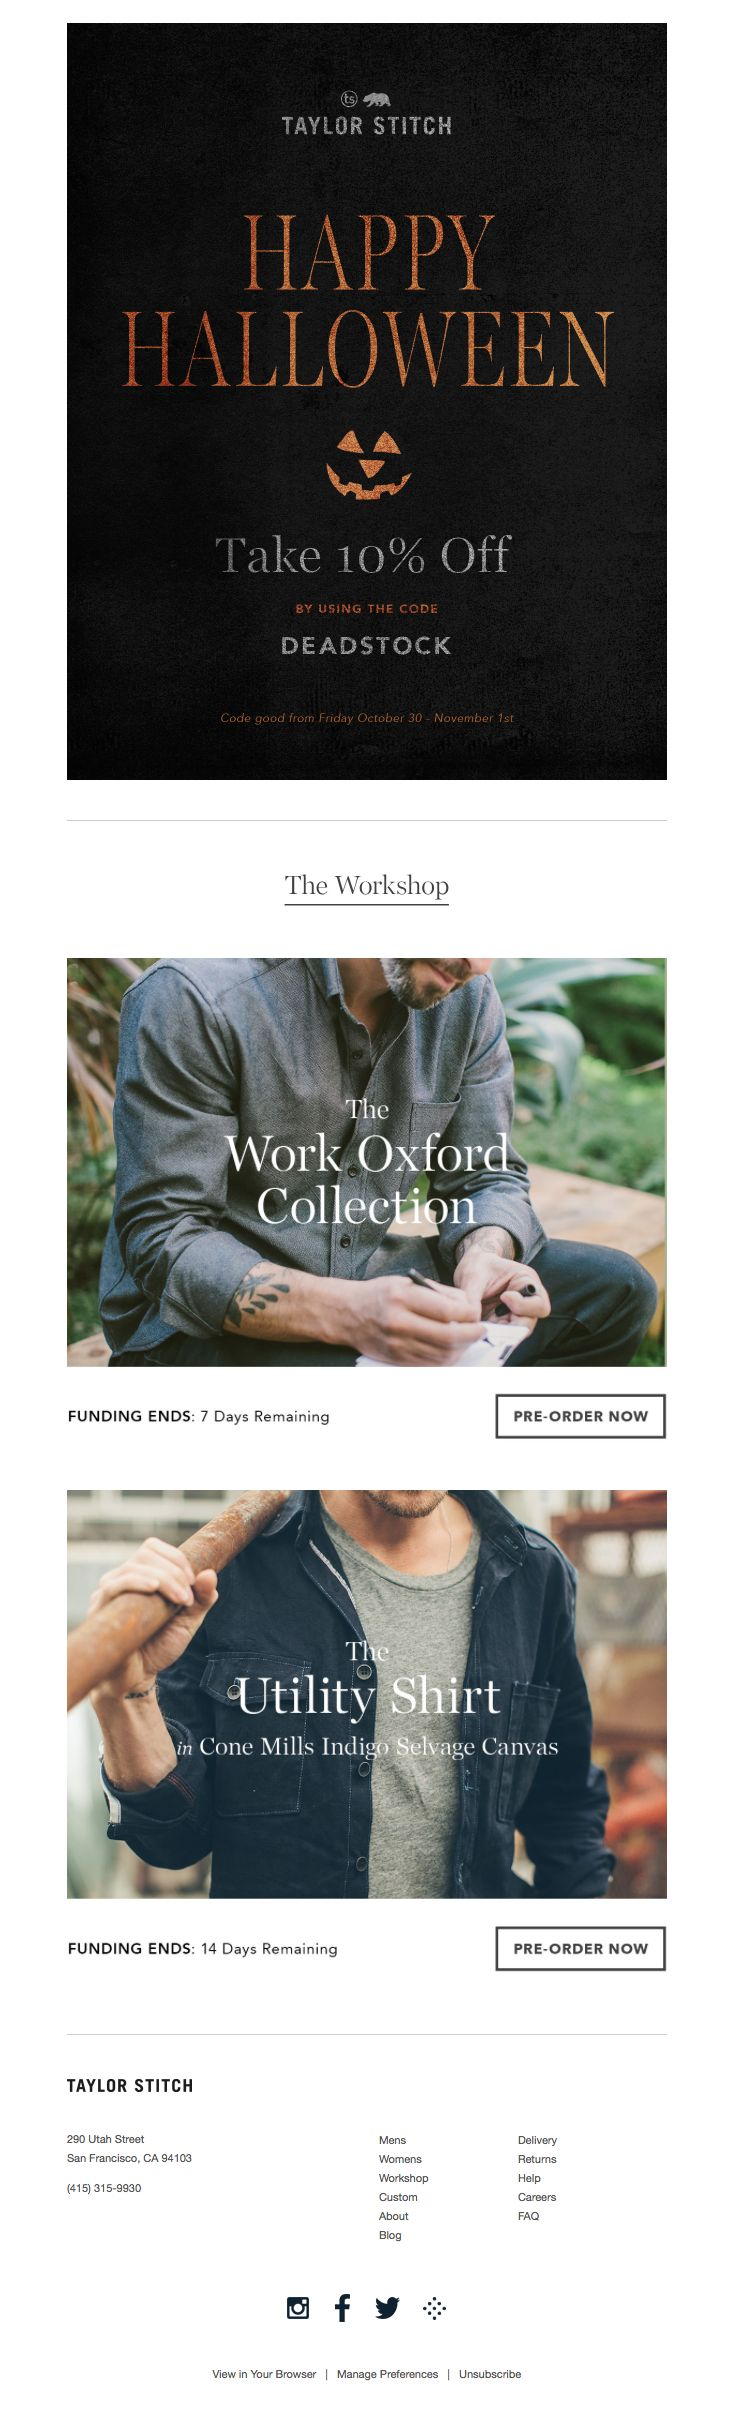 92 best emaillayout images on pinterest email newsletter design taylor stitch sent this email with the subject line a little treat to go with fandeluxe Image collections